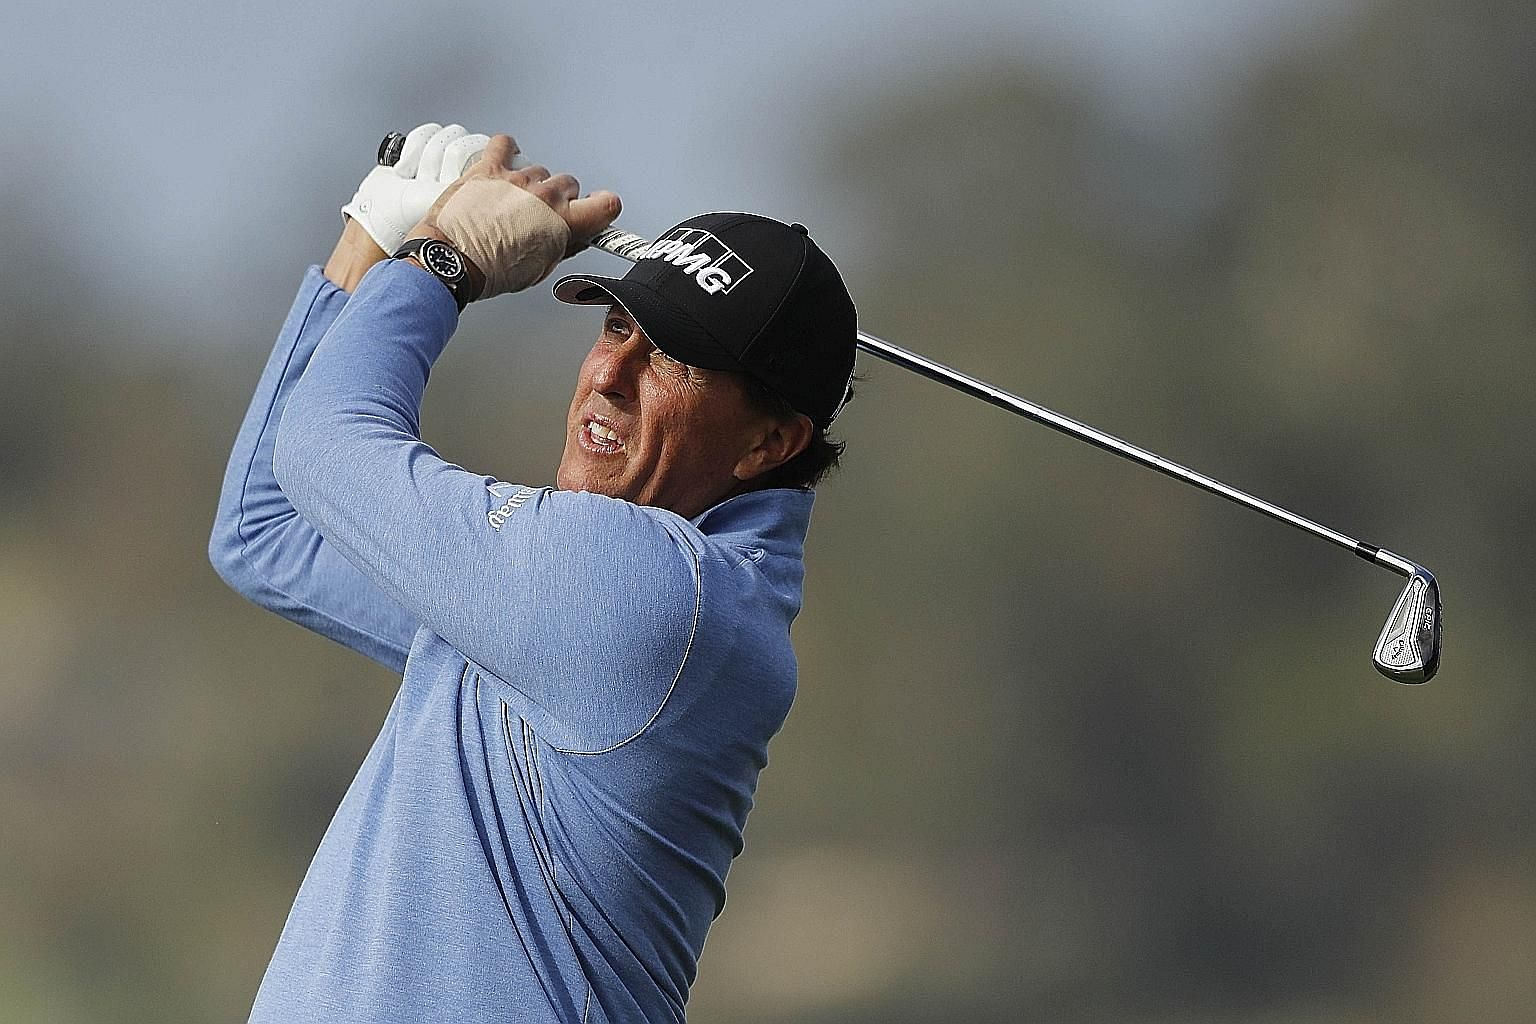 Phil Mickelson, a stroke behind leader Nick Taylor, is tied with Mark O'Meara on five wins in the Pebble Beach Pro-Am event. PHOTO: AGENCE FRANCE-PRESSE